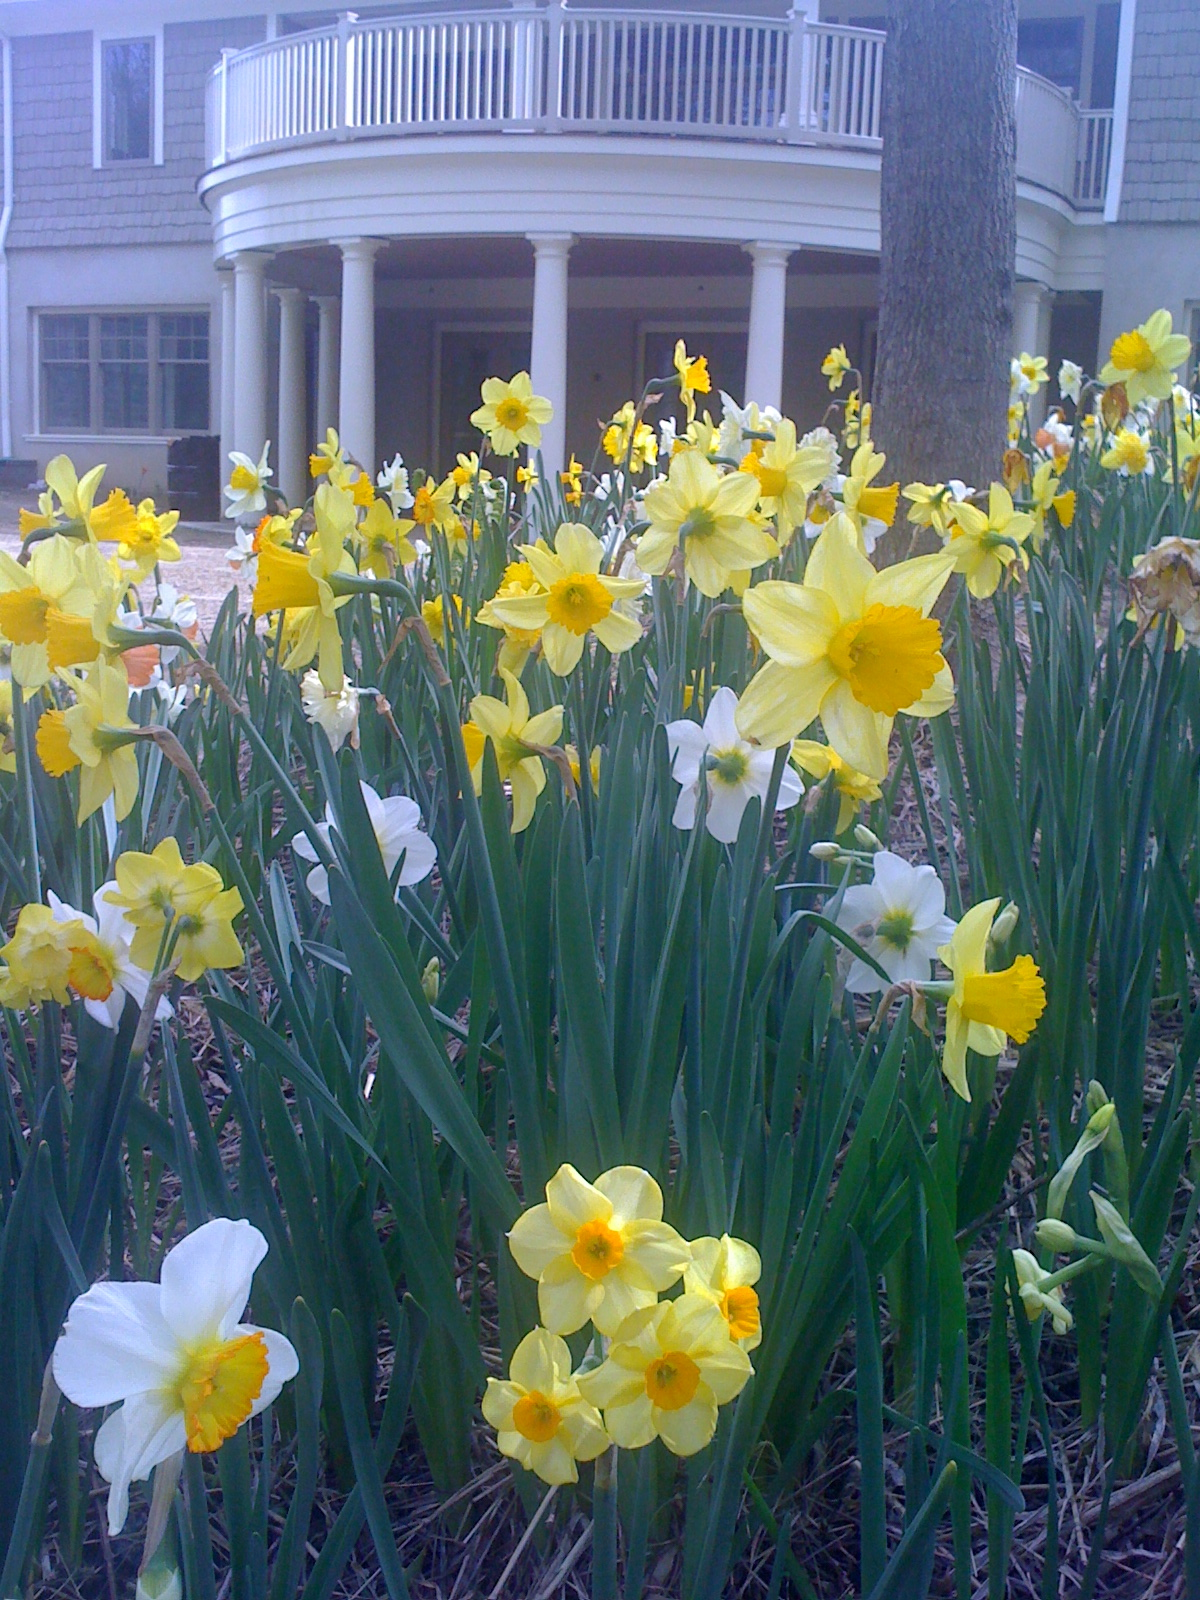 The Phyllis & Charlie Speidel Daffodil section of the Marian & Hans Kretsch Gardens offers a respite from the concerns of cancer.